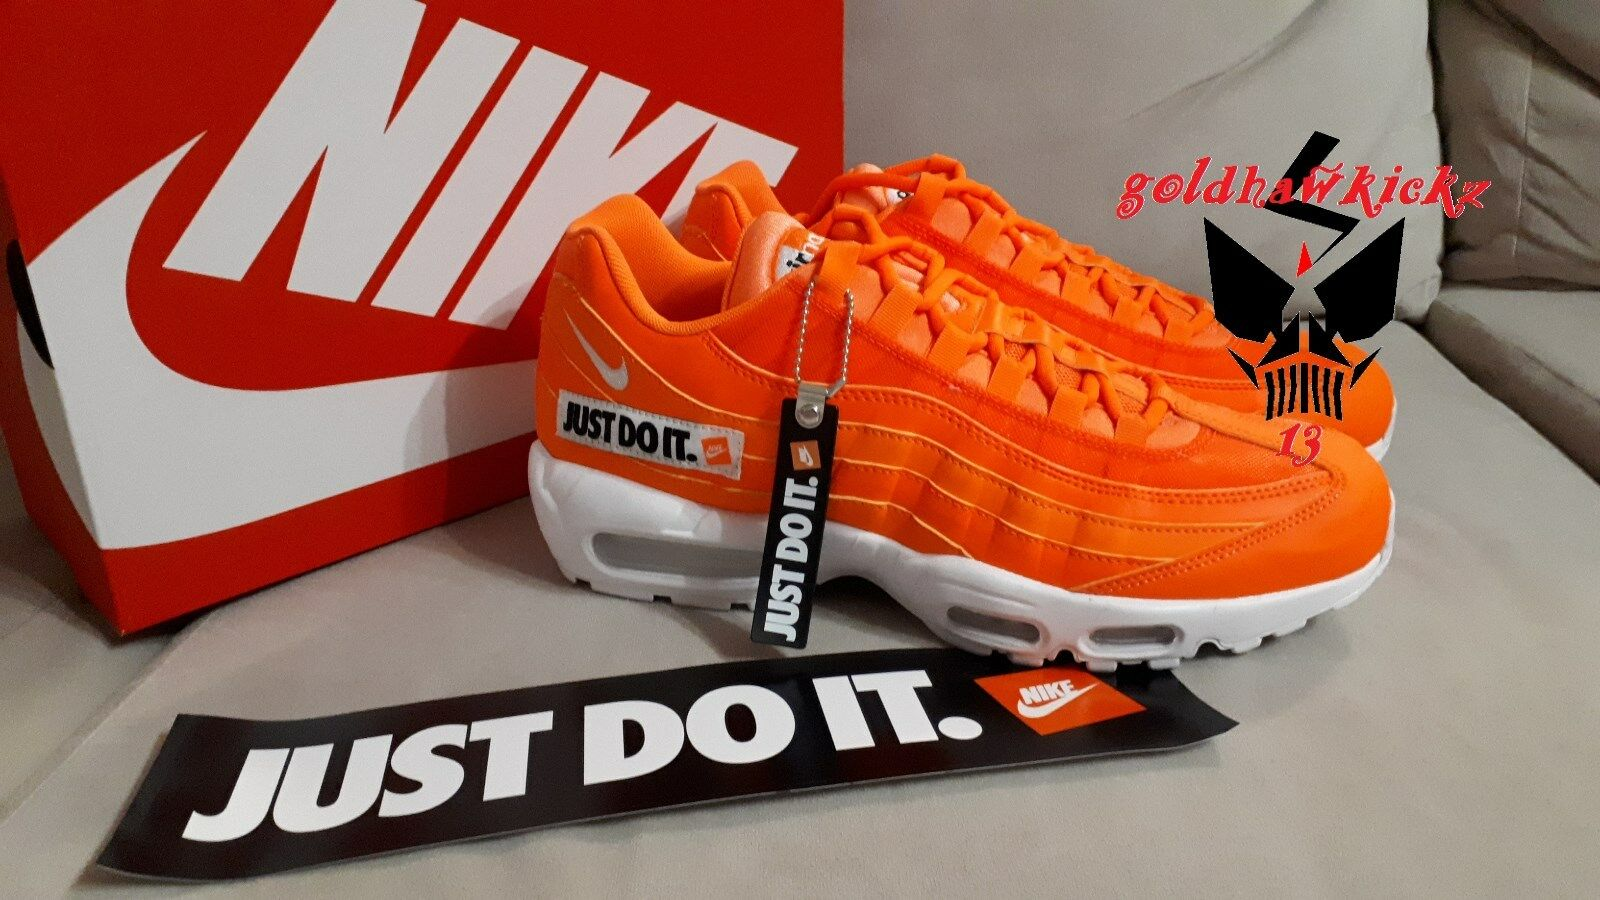 029f2beea03c3 Air Max 95 SE JUST DO IT av6246 800 total orange JDI am95 Nike ...